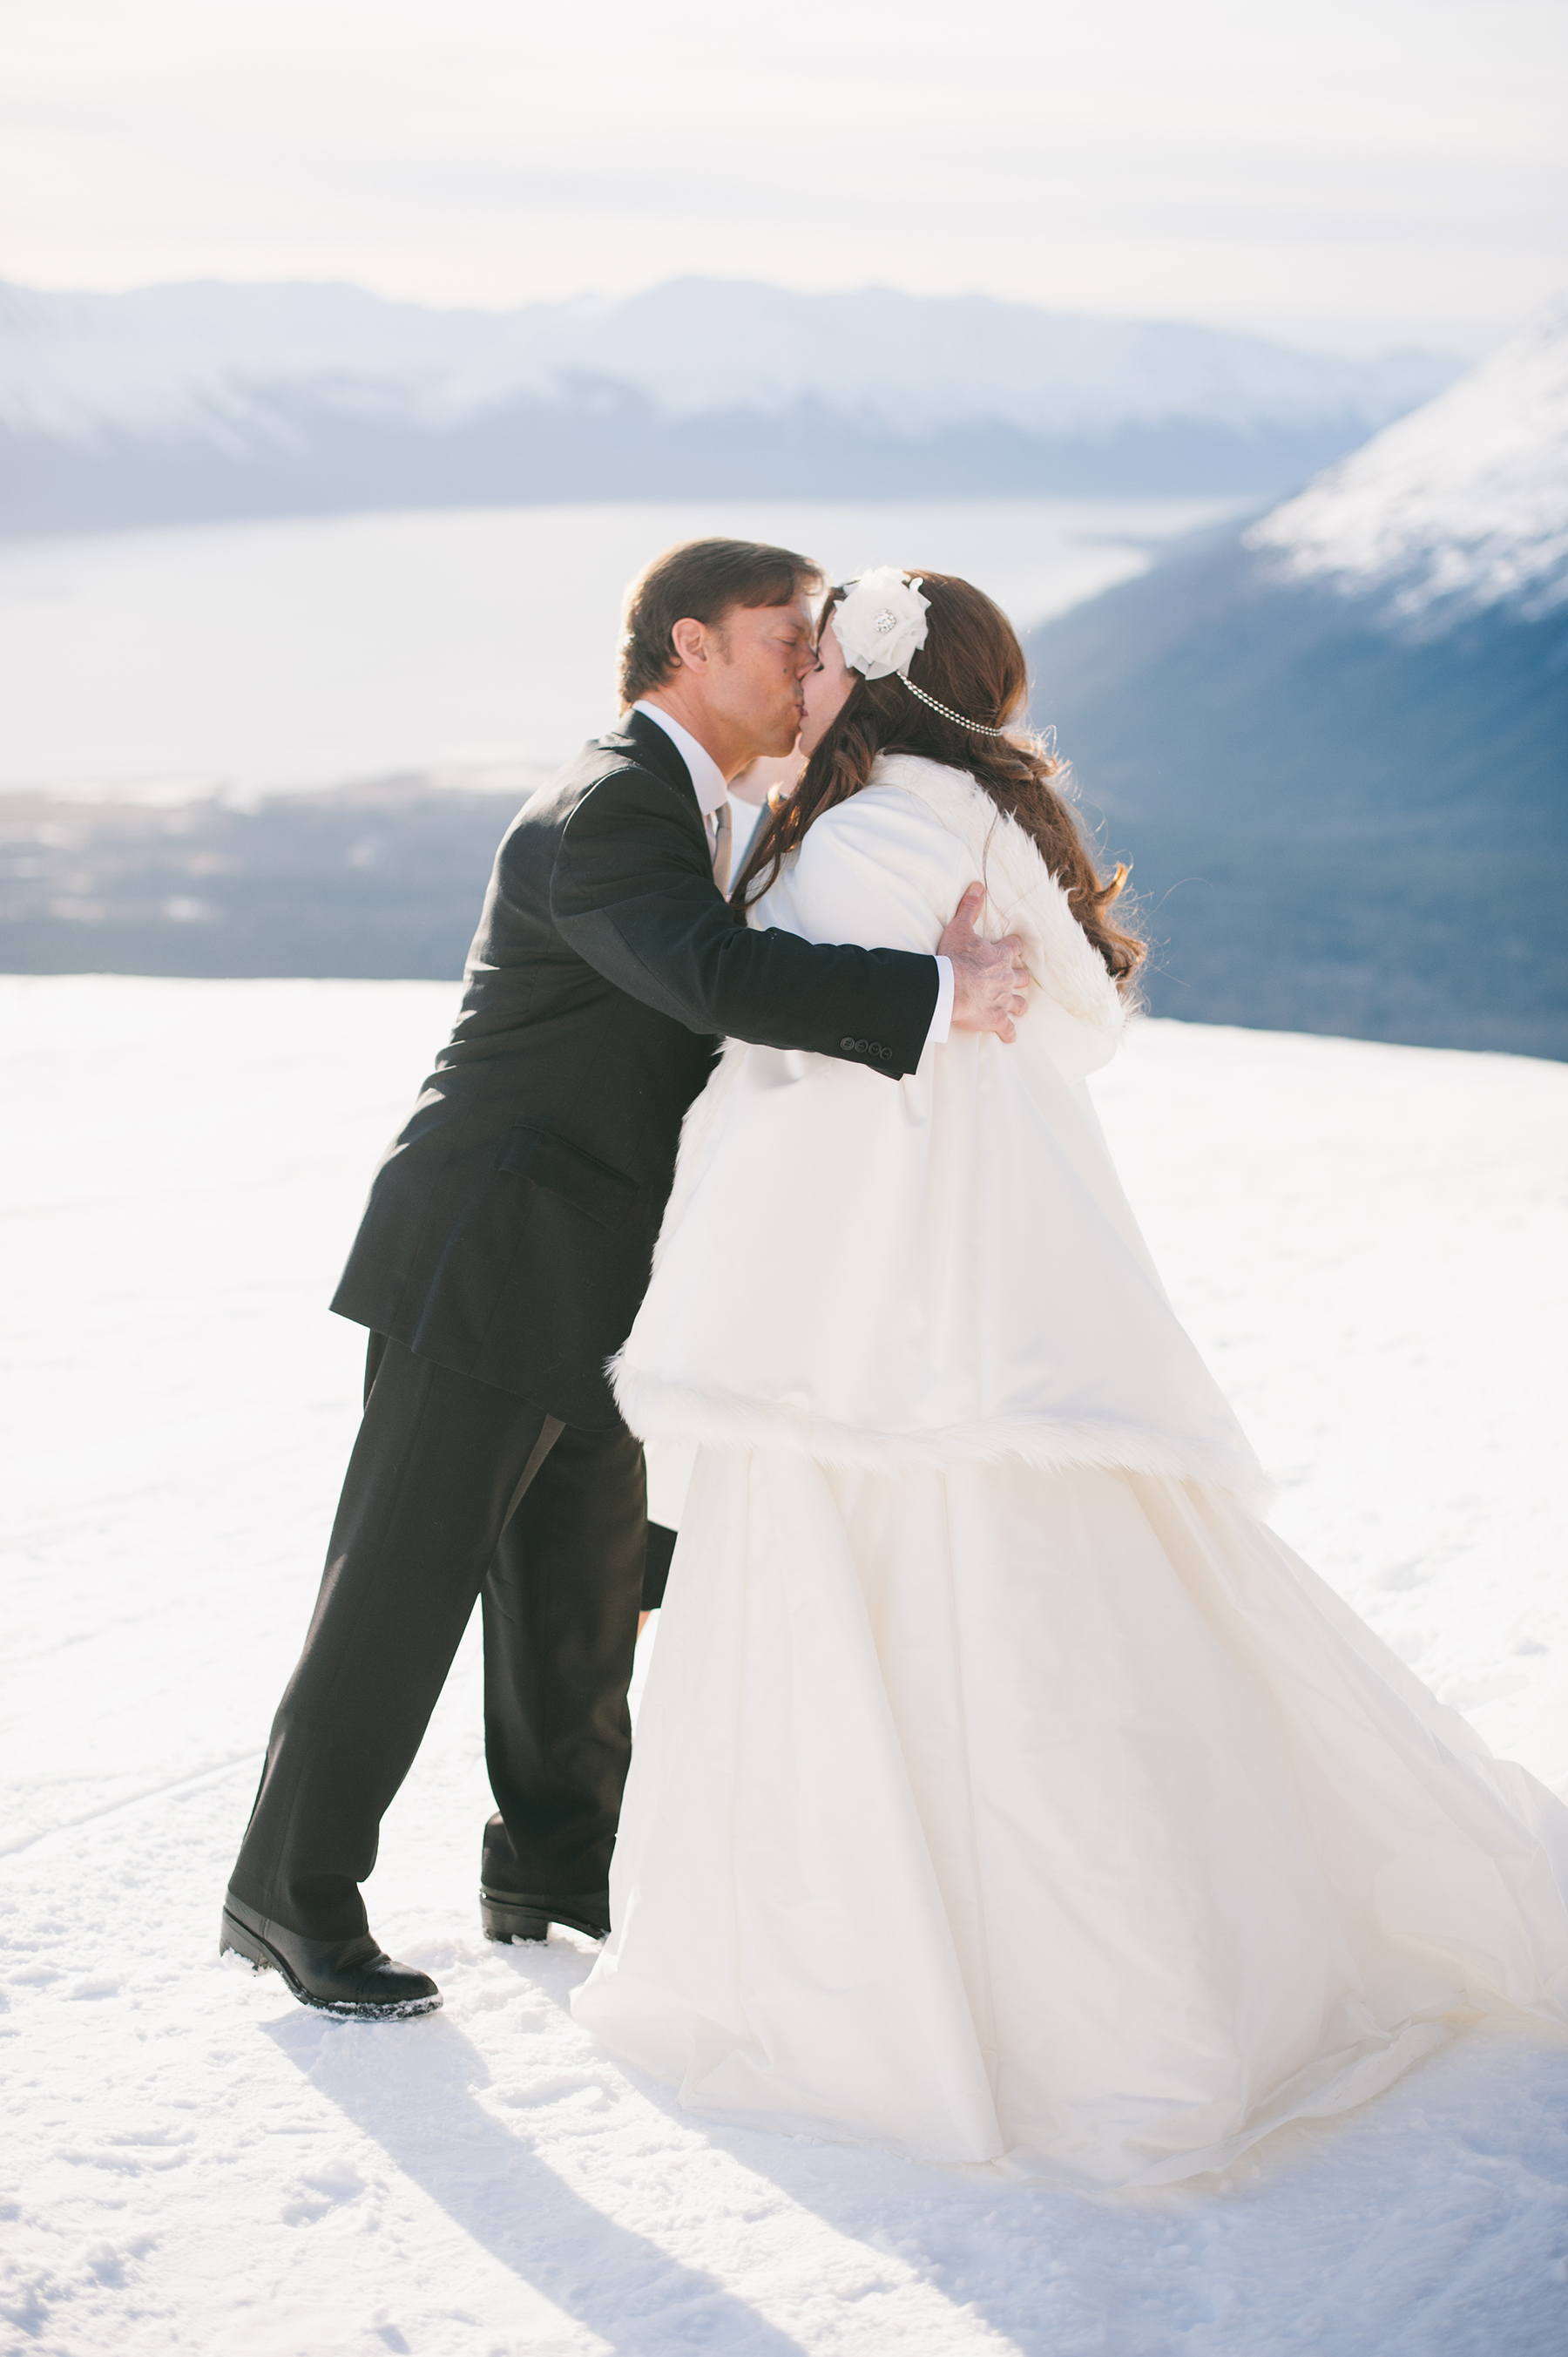 Bride and Groom Kissing on Mountain